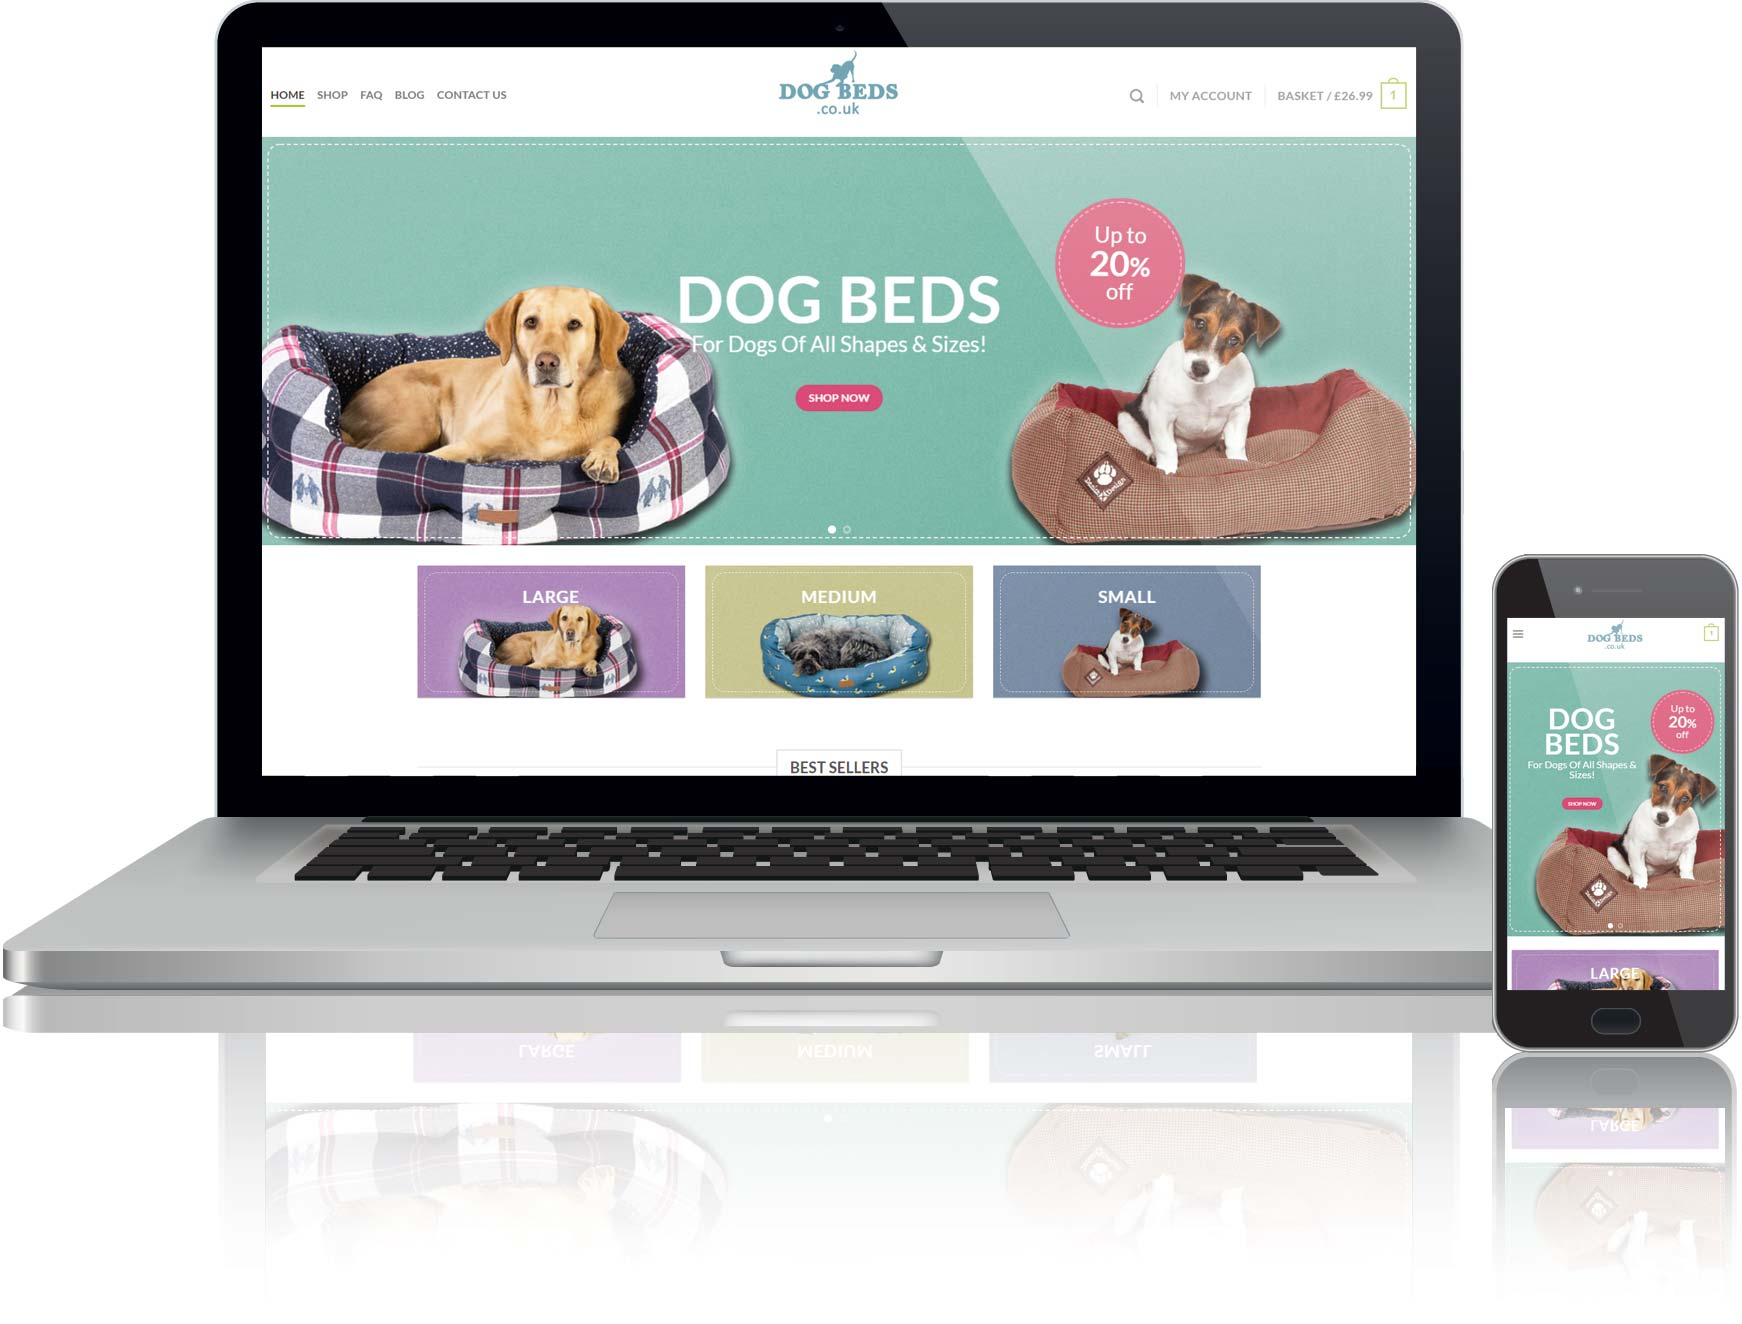 website design for online shop selling dog beds